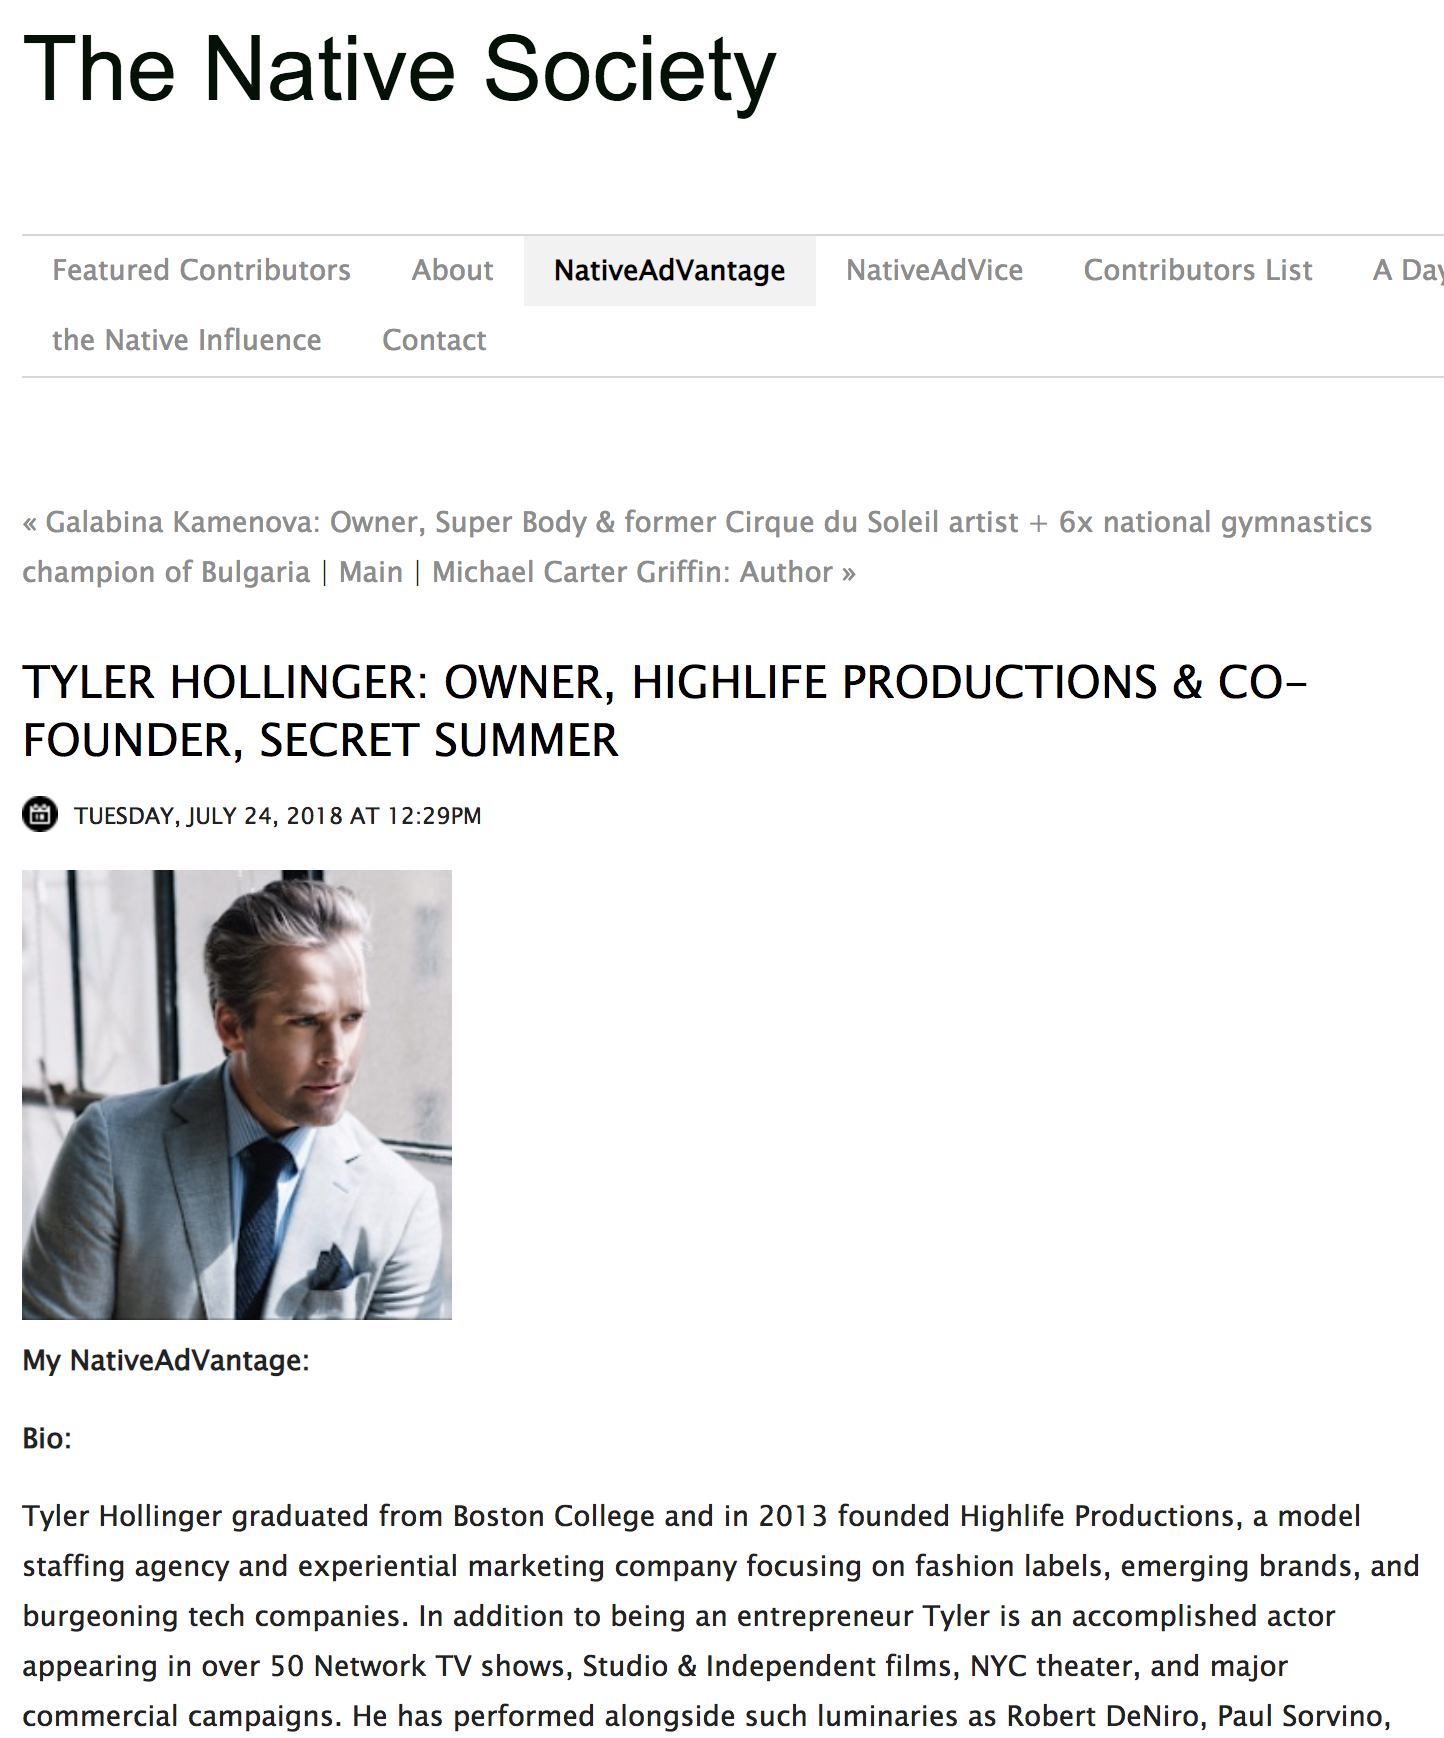 Tyler Hollinger in Native Society